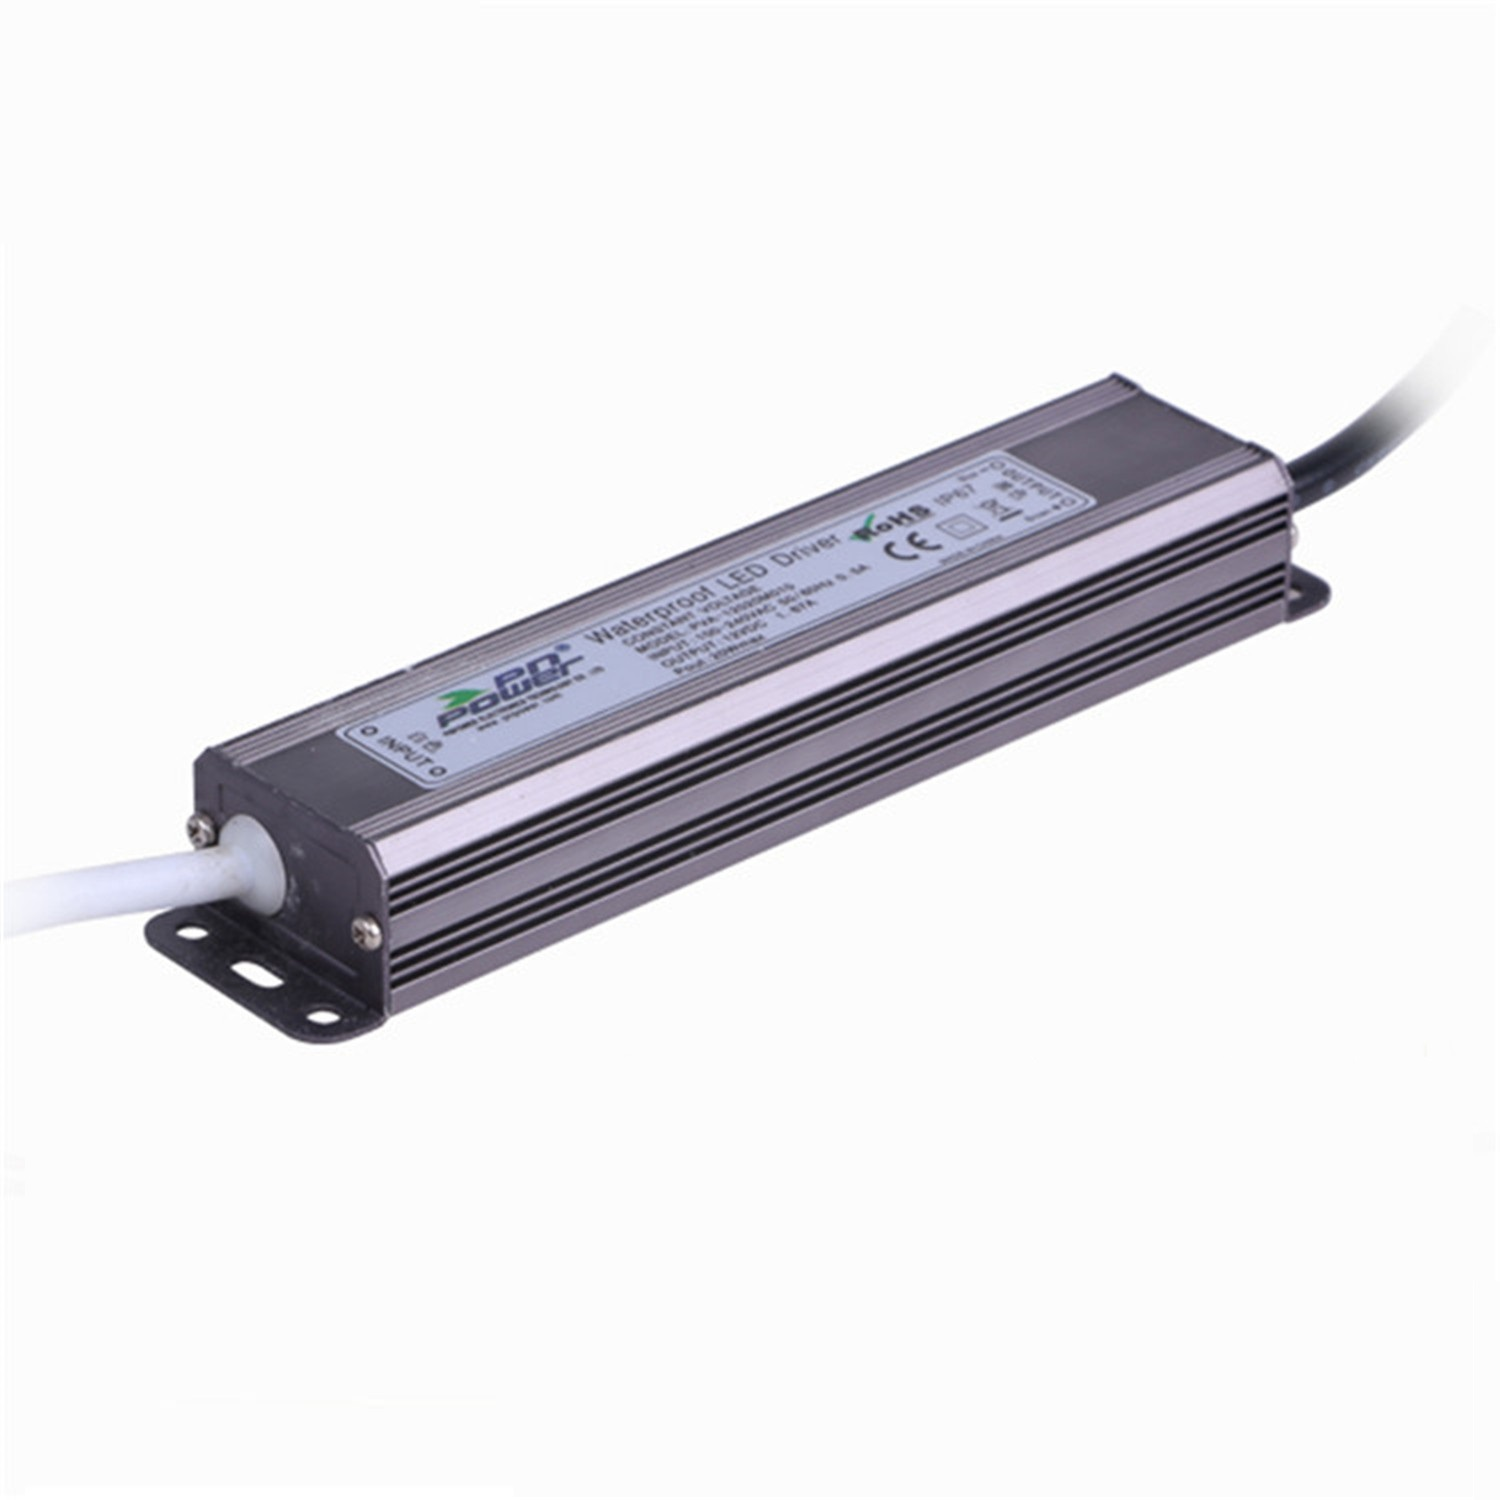 20W constant voltage power supply